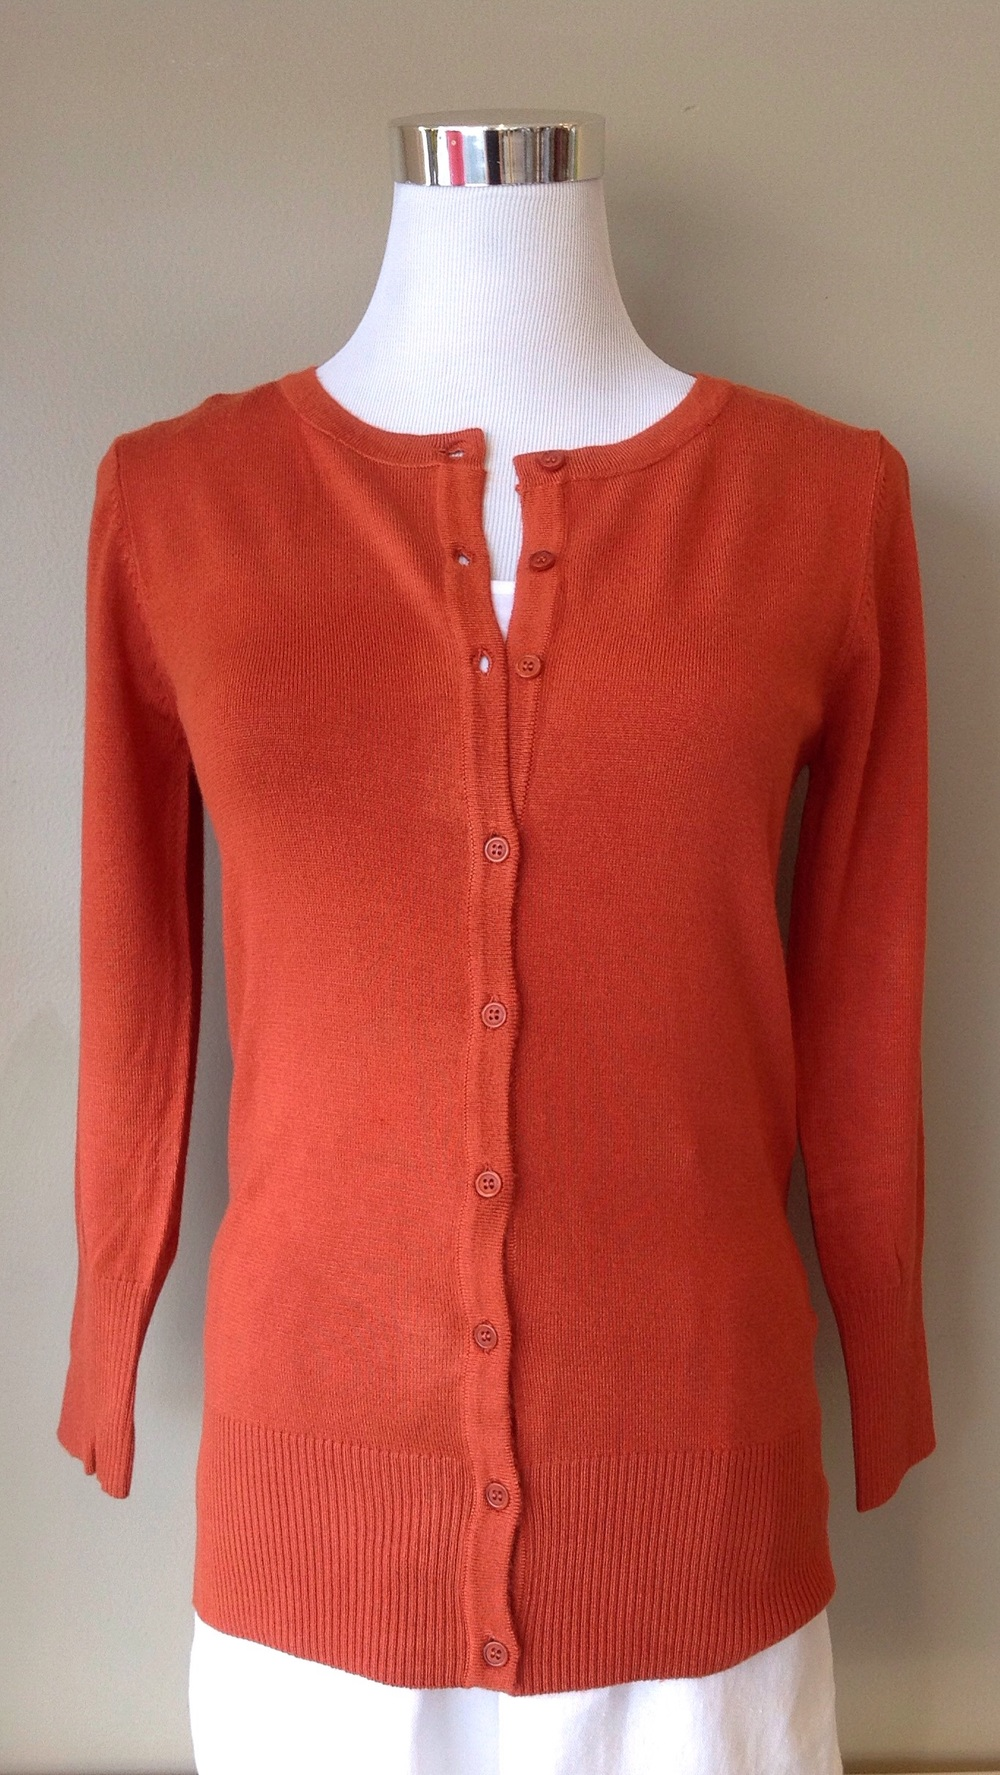 Cotton blend 3/4 sleeve cardigan in orange, $28